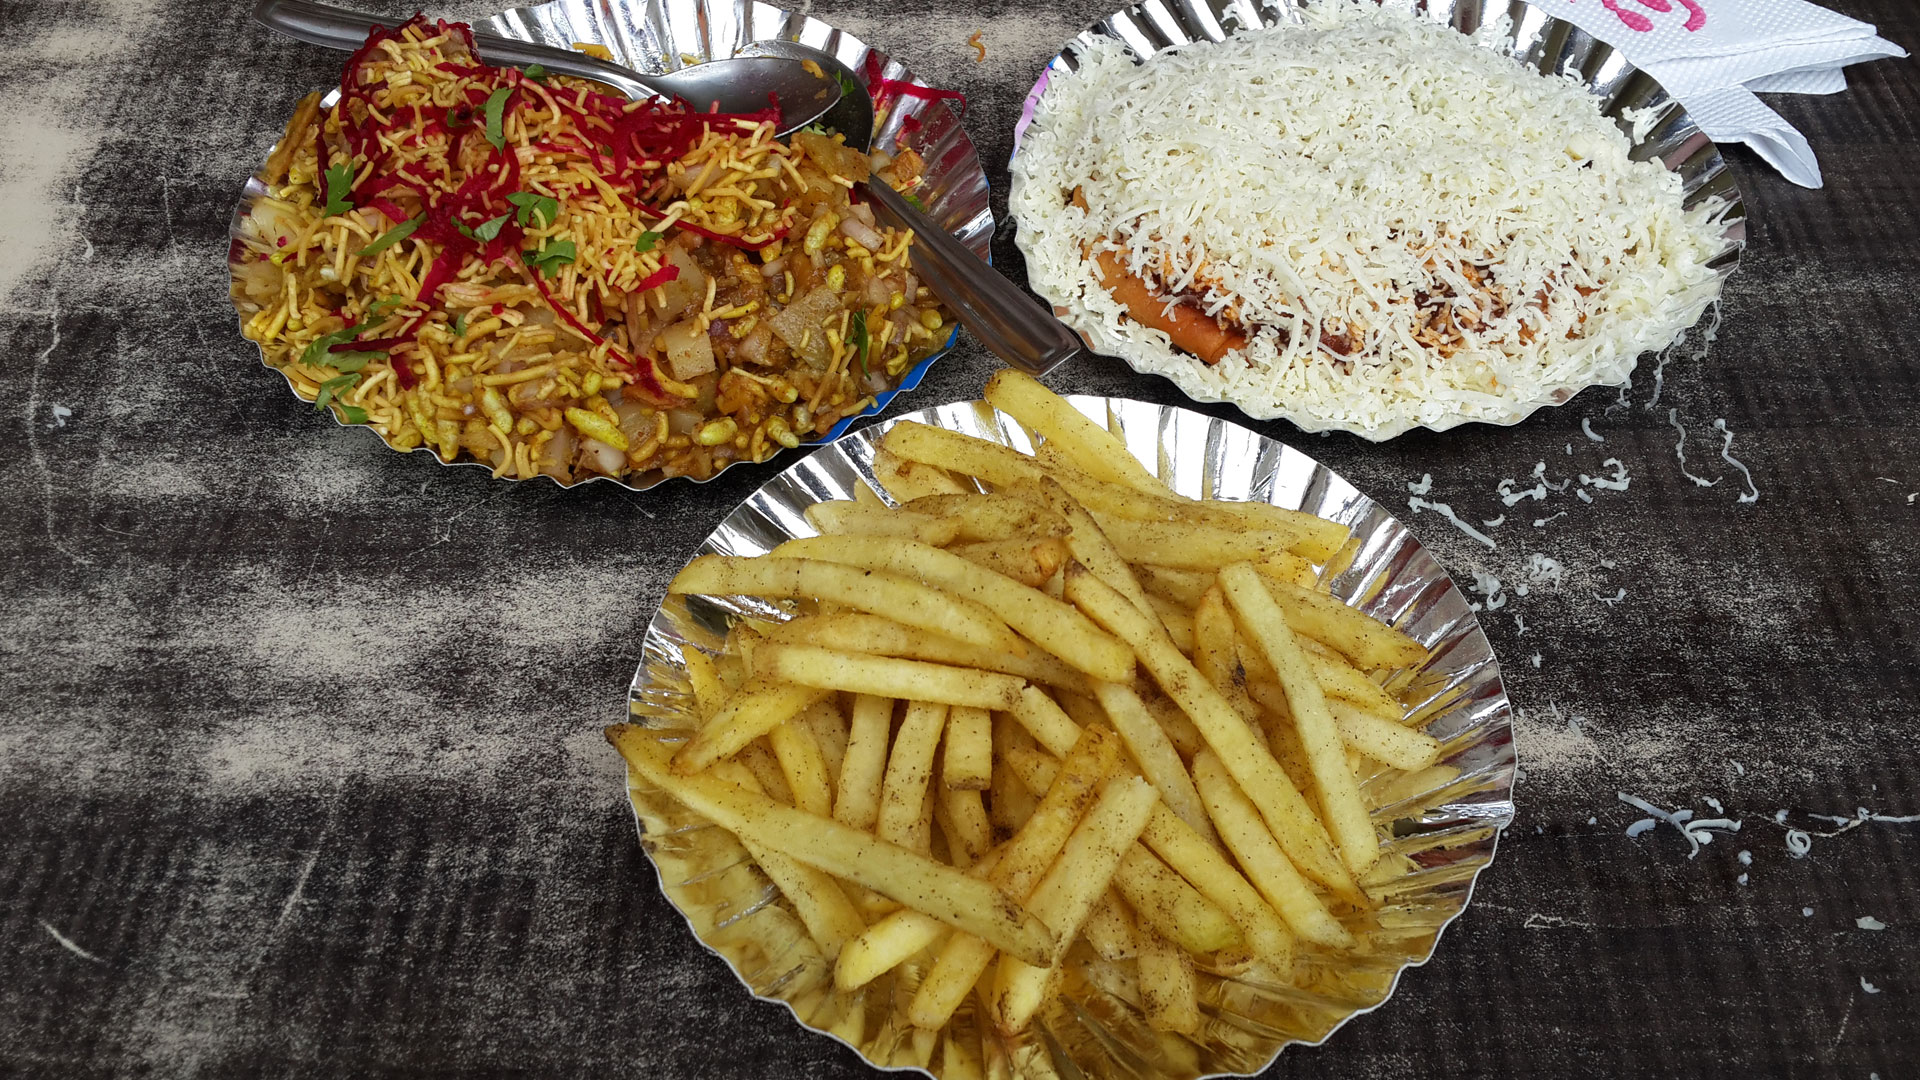 Different snacks at the Municipal Market in Ahmedabad